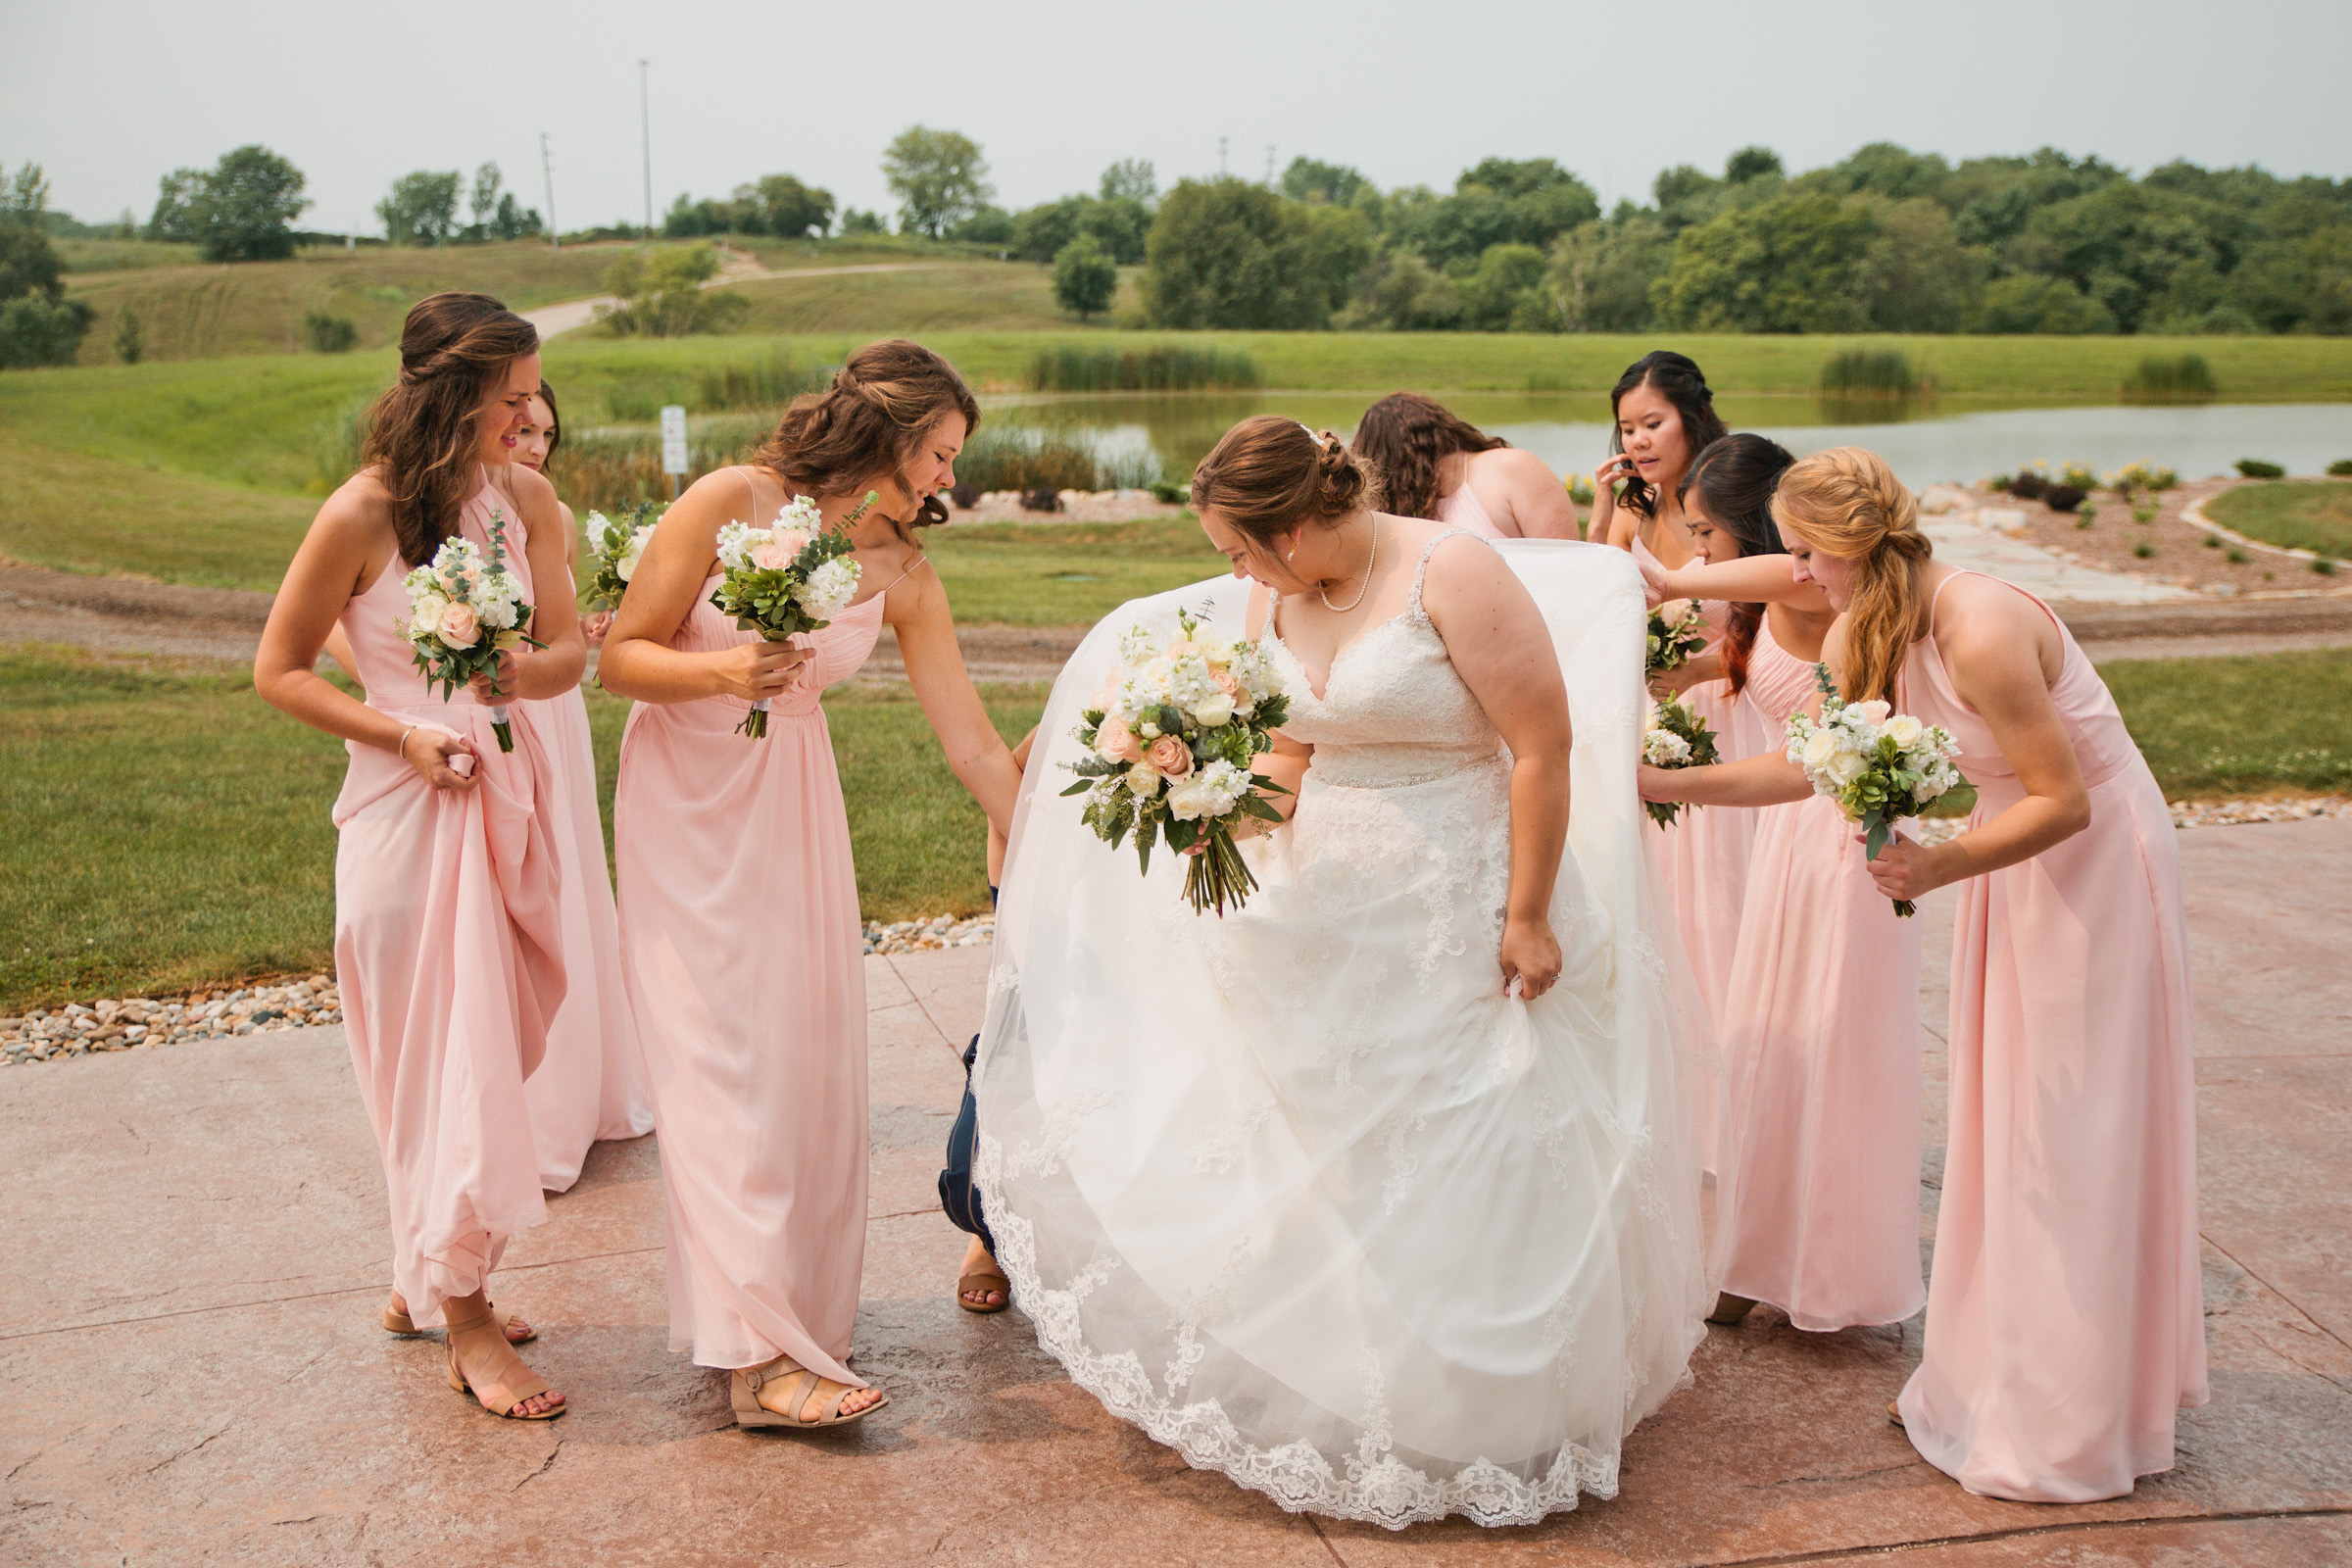 bridesmaids helping bride get bugs out of her dress layers